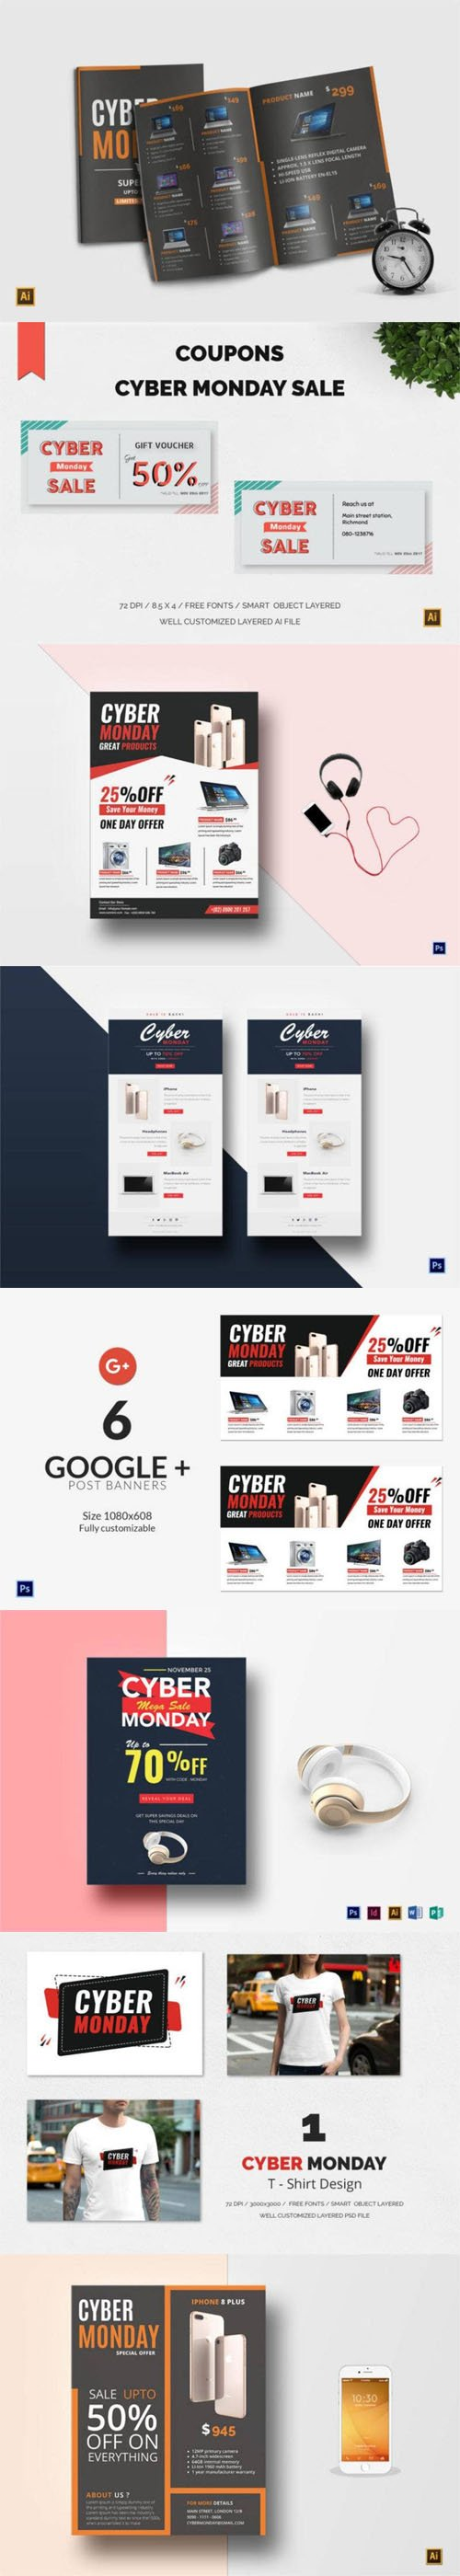 15 Designs and Templates You Need for Cyber Monday Creatives